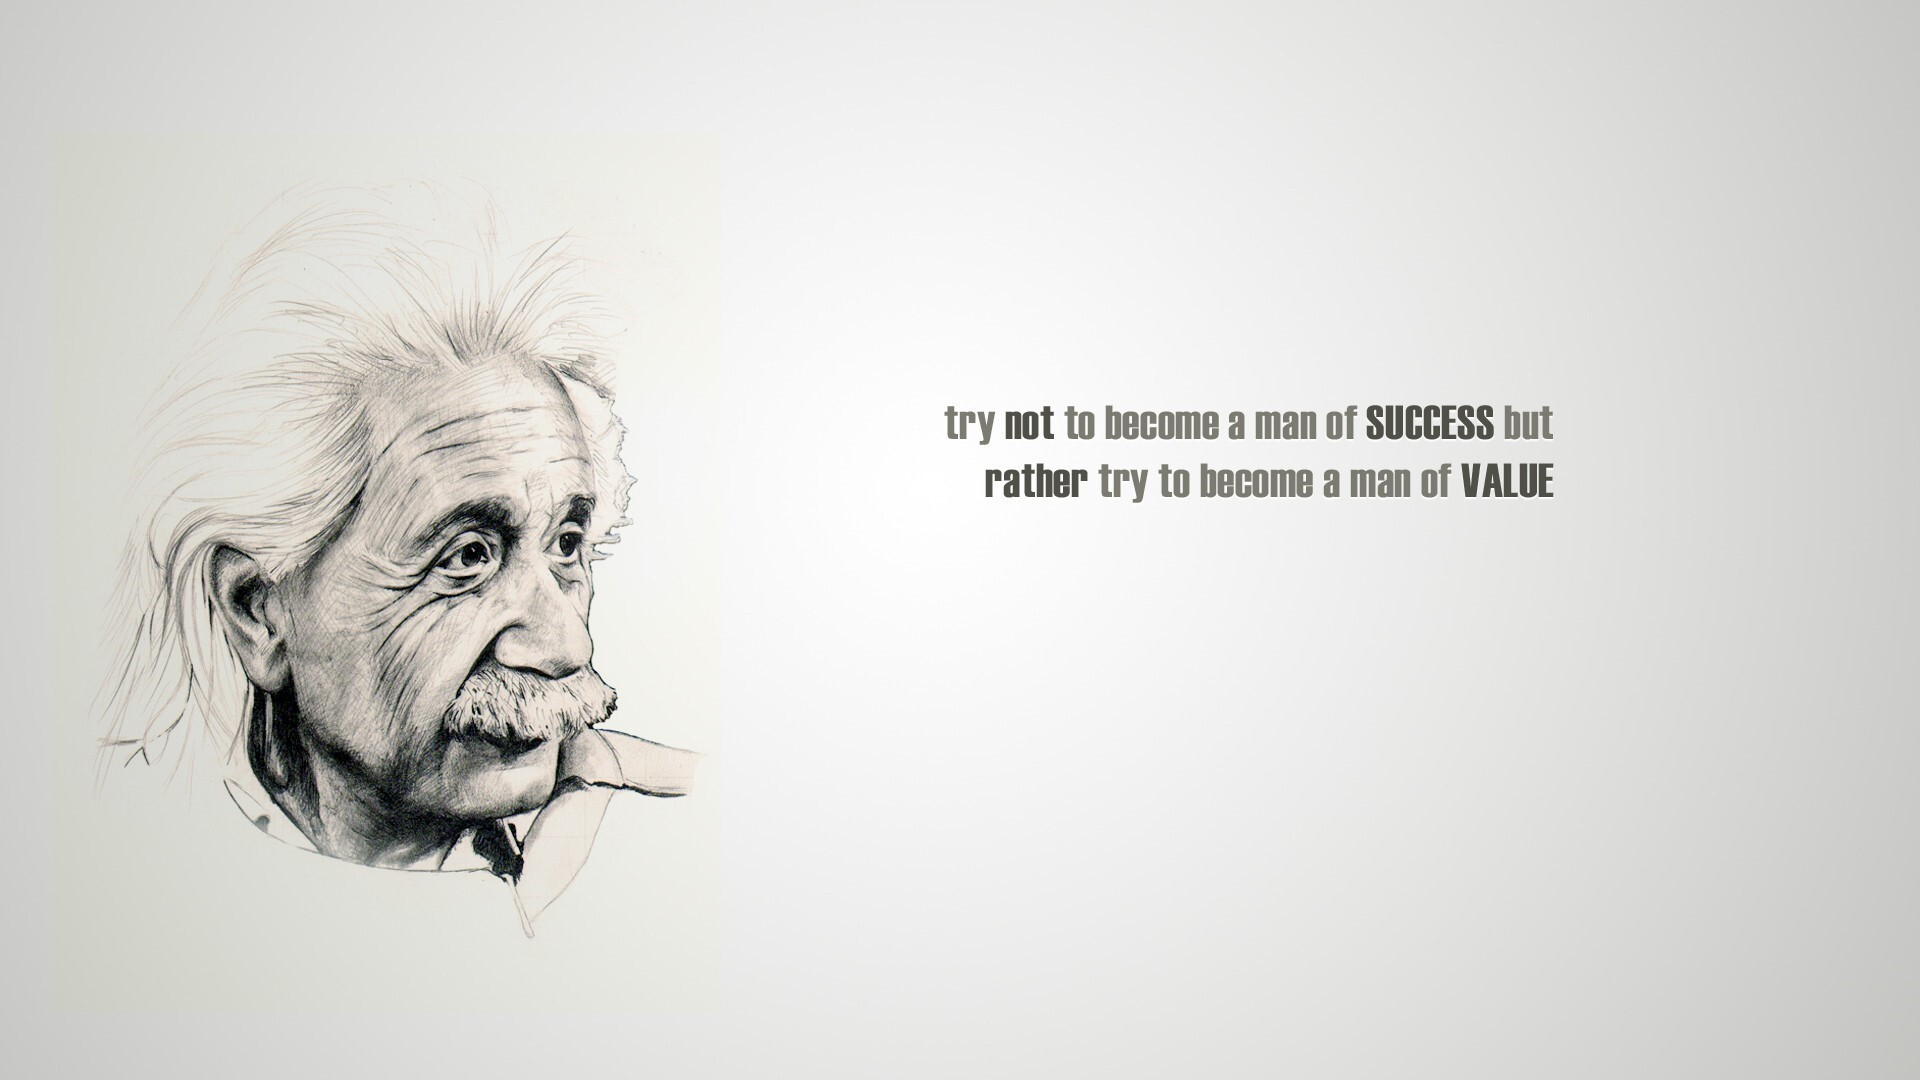 albert einstein famous quote on success and value hd wallpaper | hd